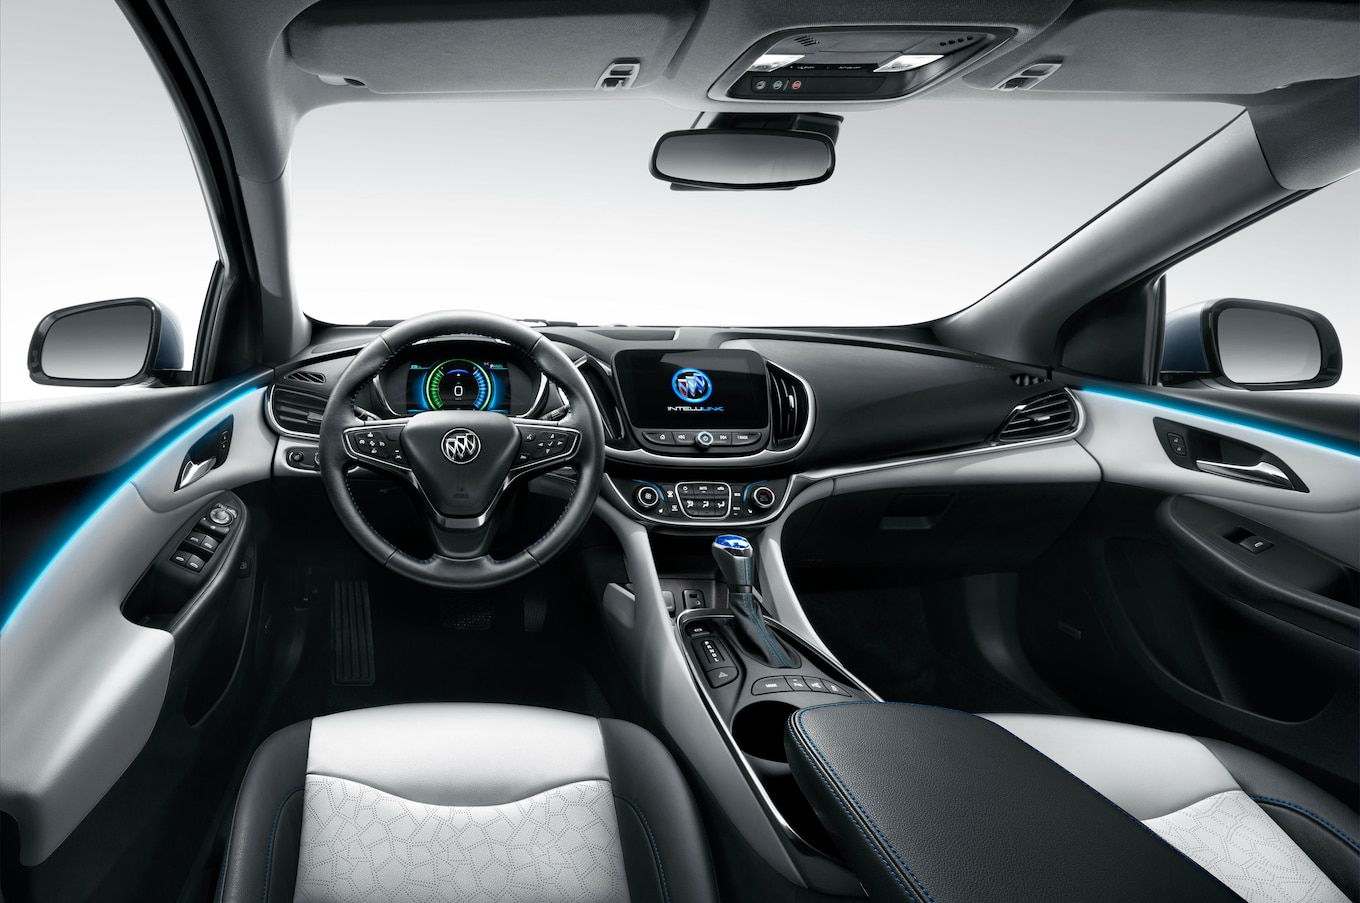 interior grand new avanza 1.3 g speedometer chevrolet volt arrives in china as the buick velite 5